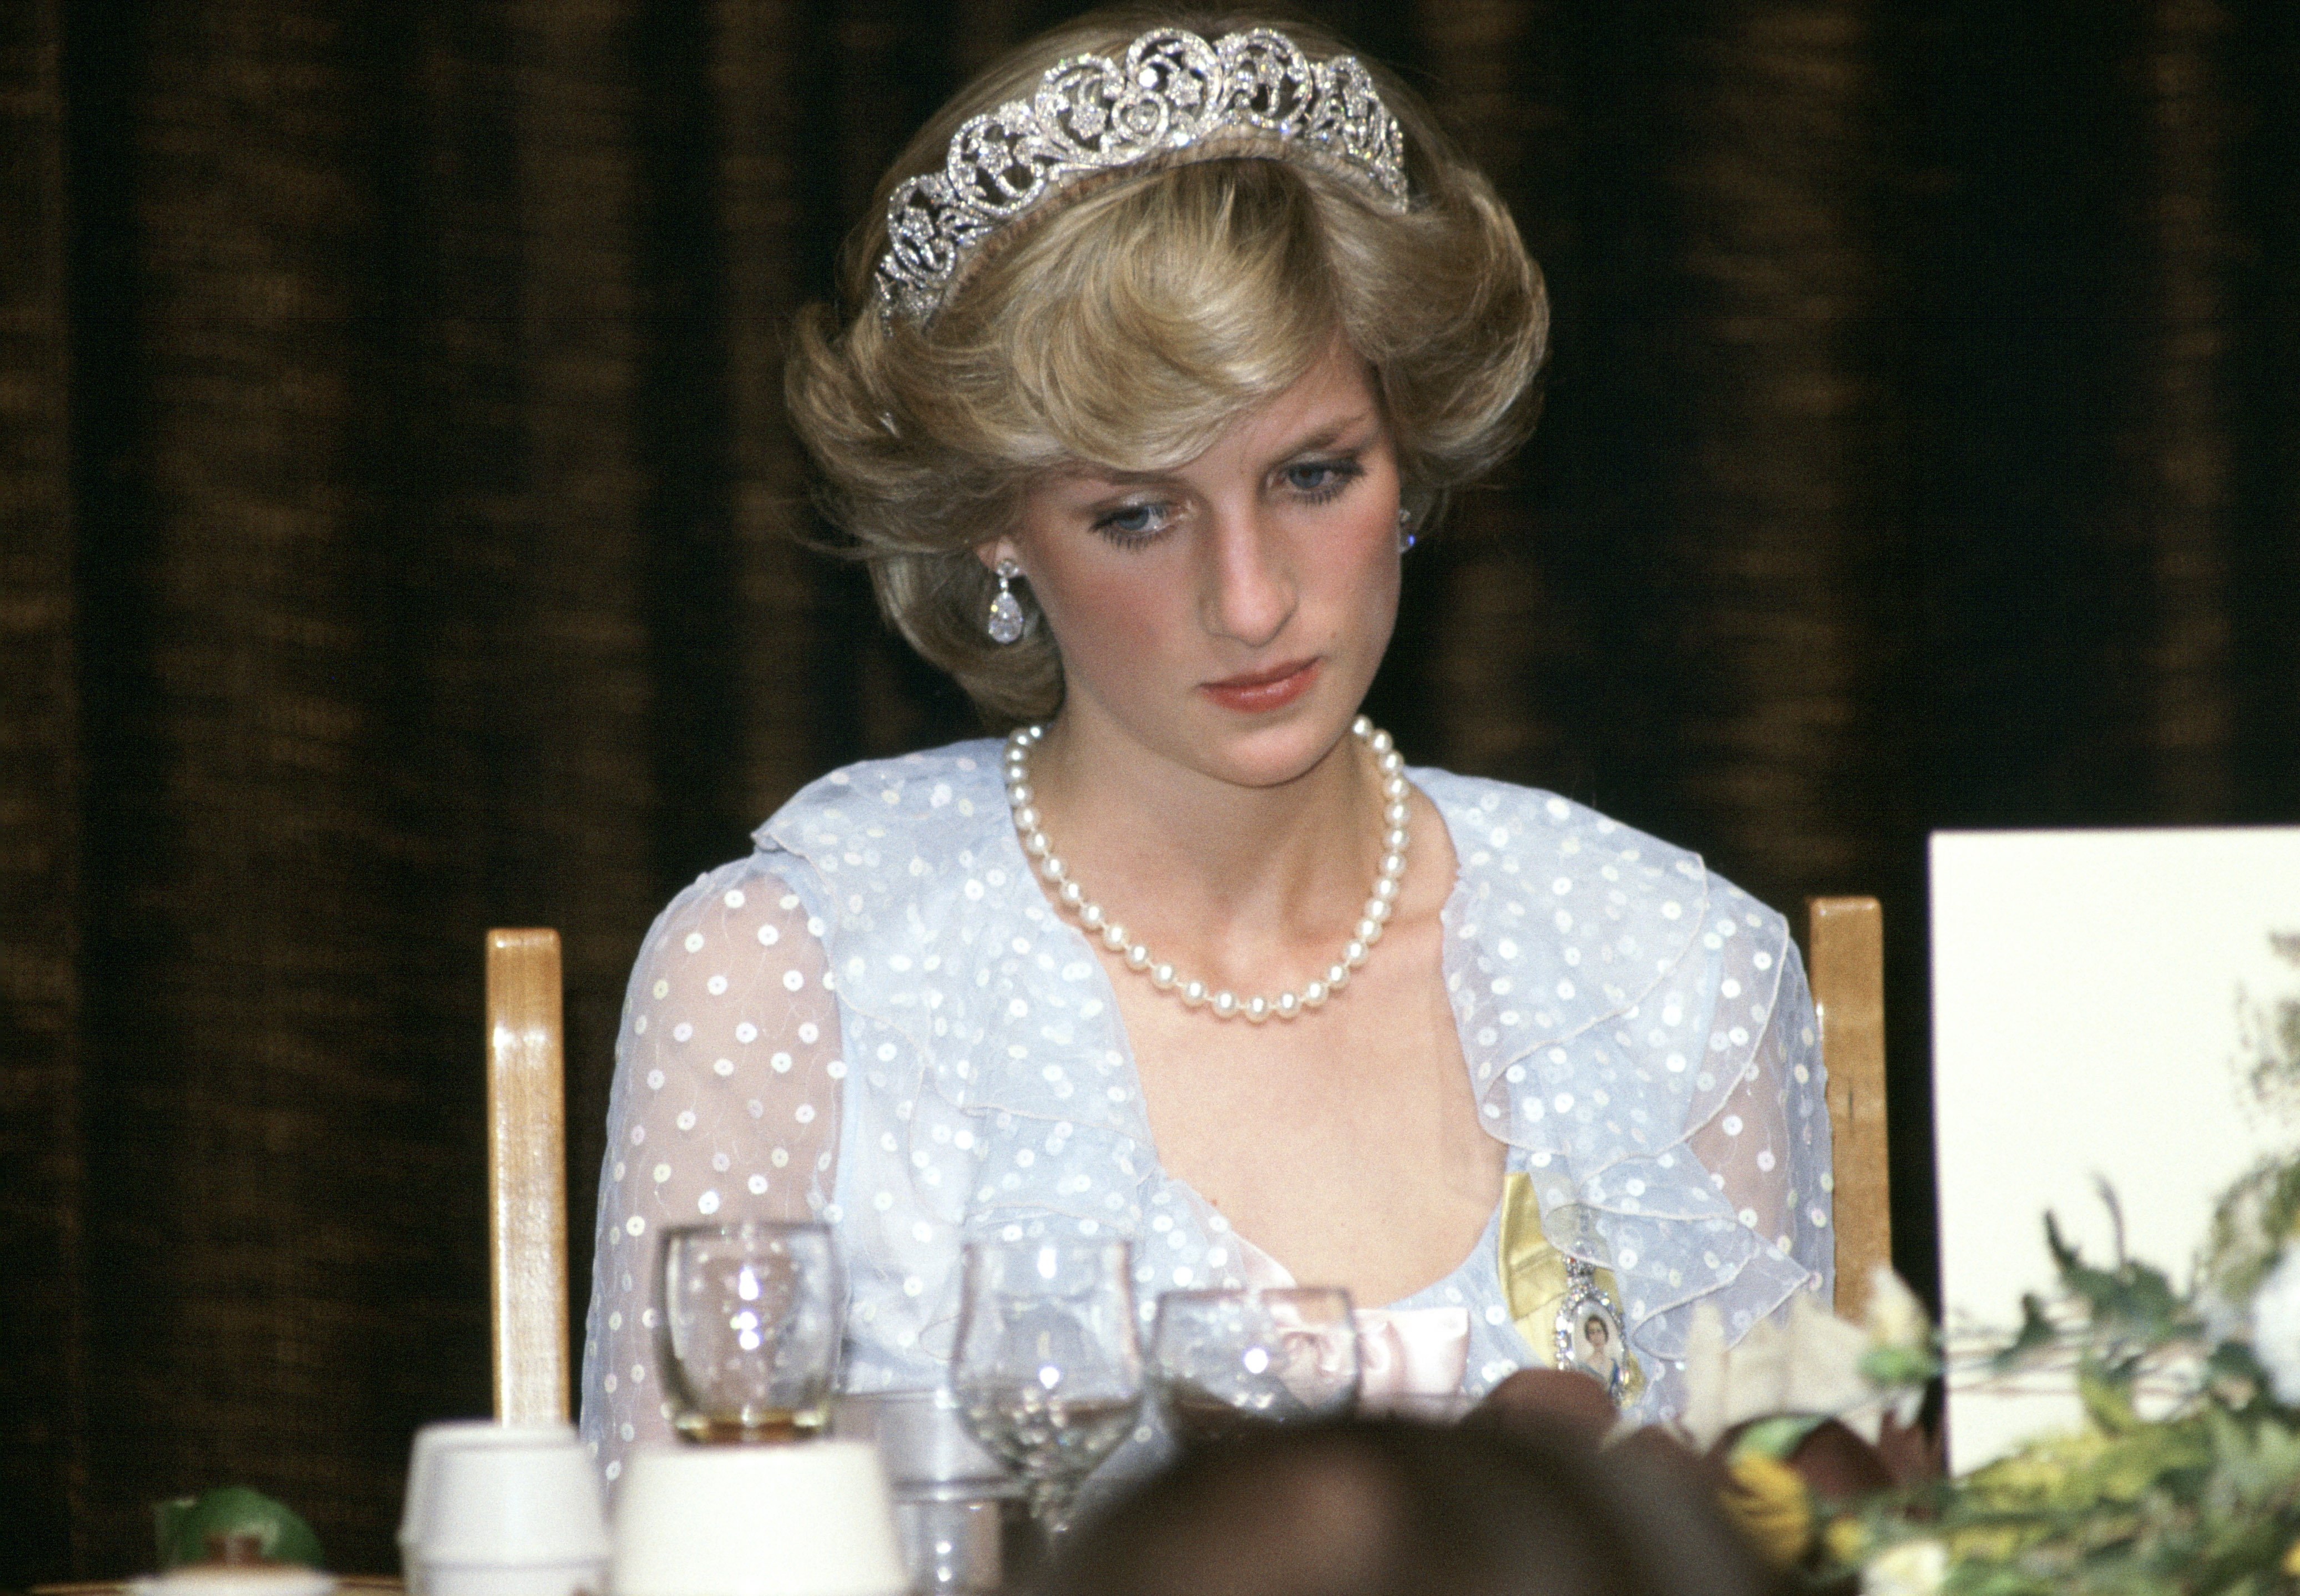 Princess Diana at a banquet in New Zealand wearing a blue chiffon evening dress on April 20, 1983 | Photo: Getty Images